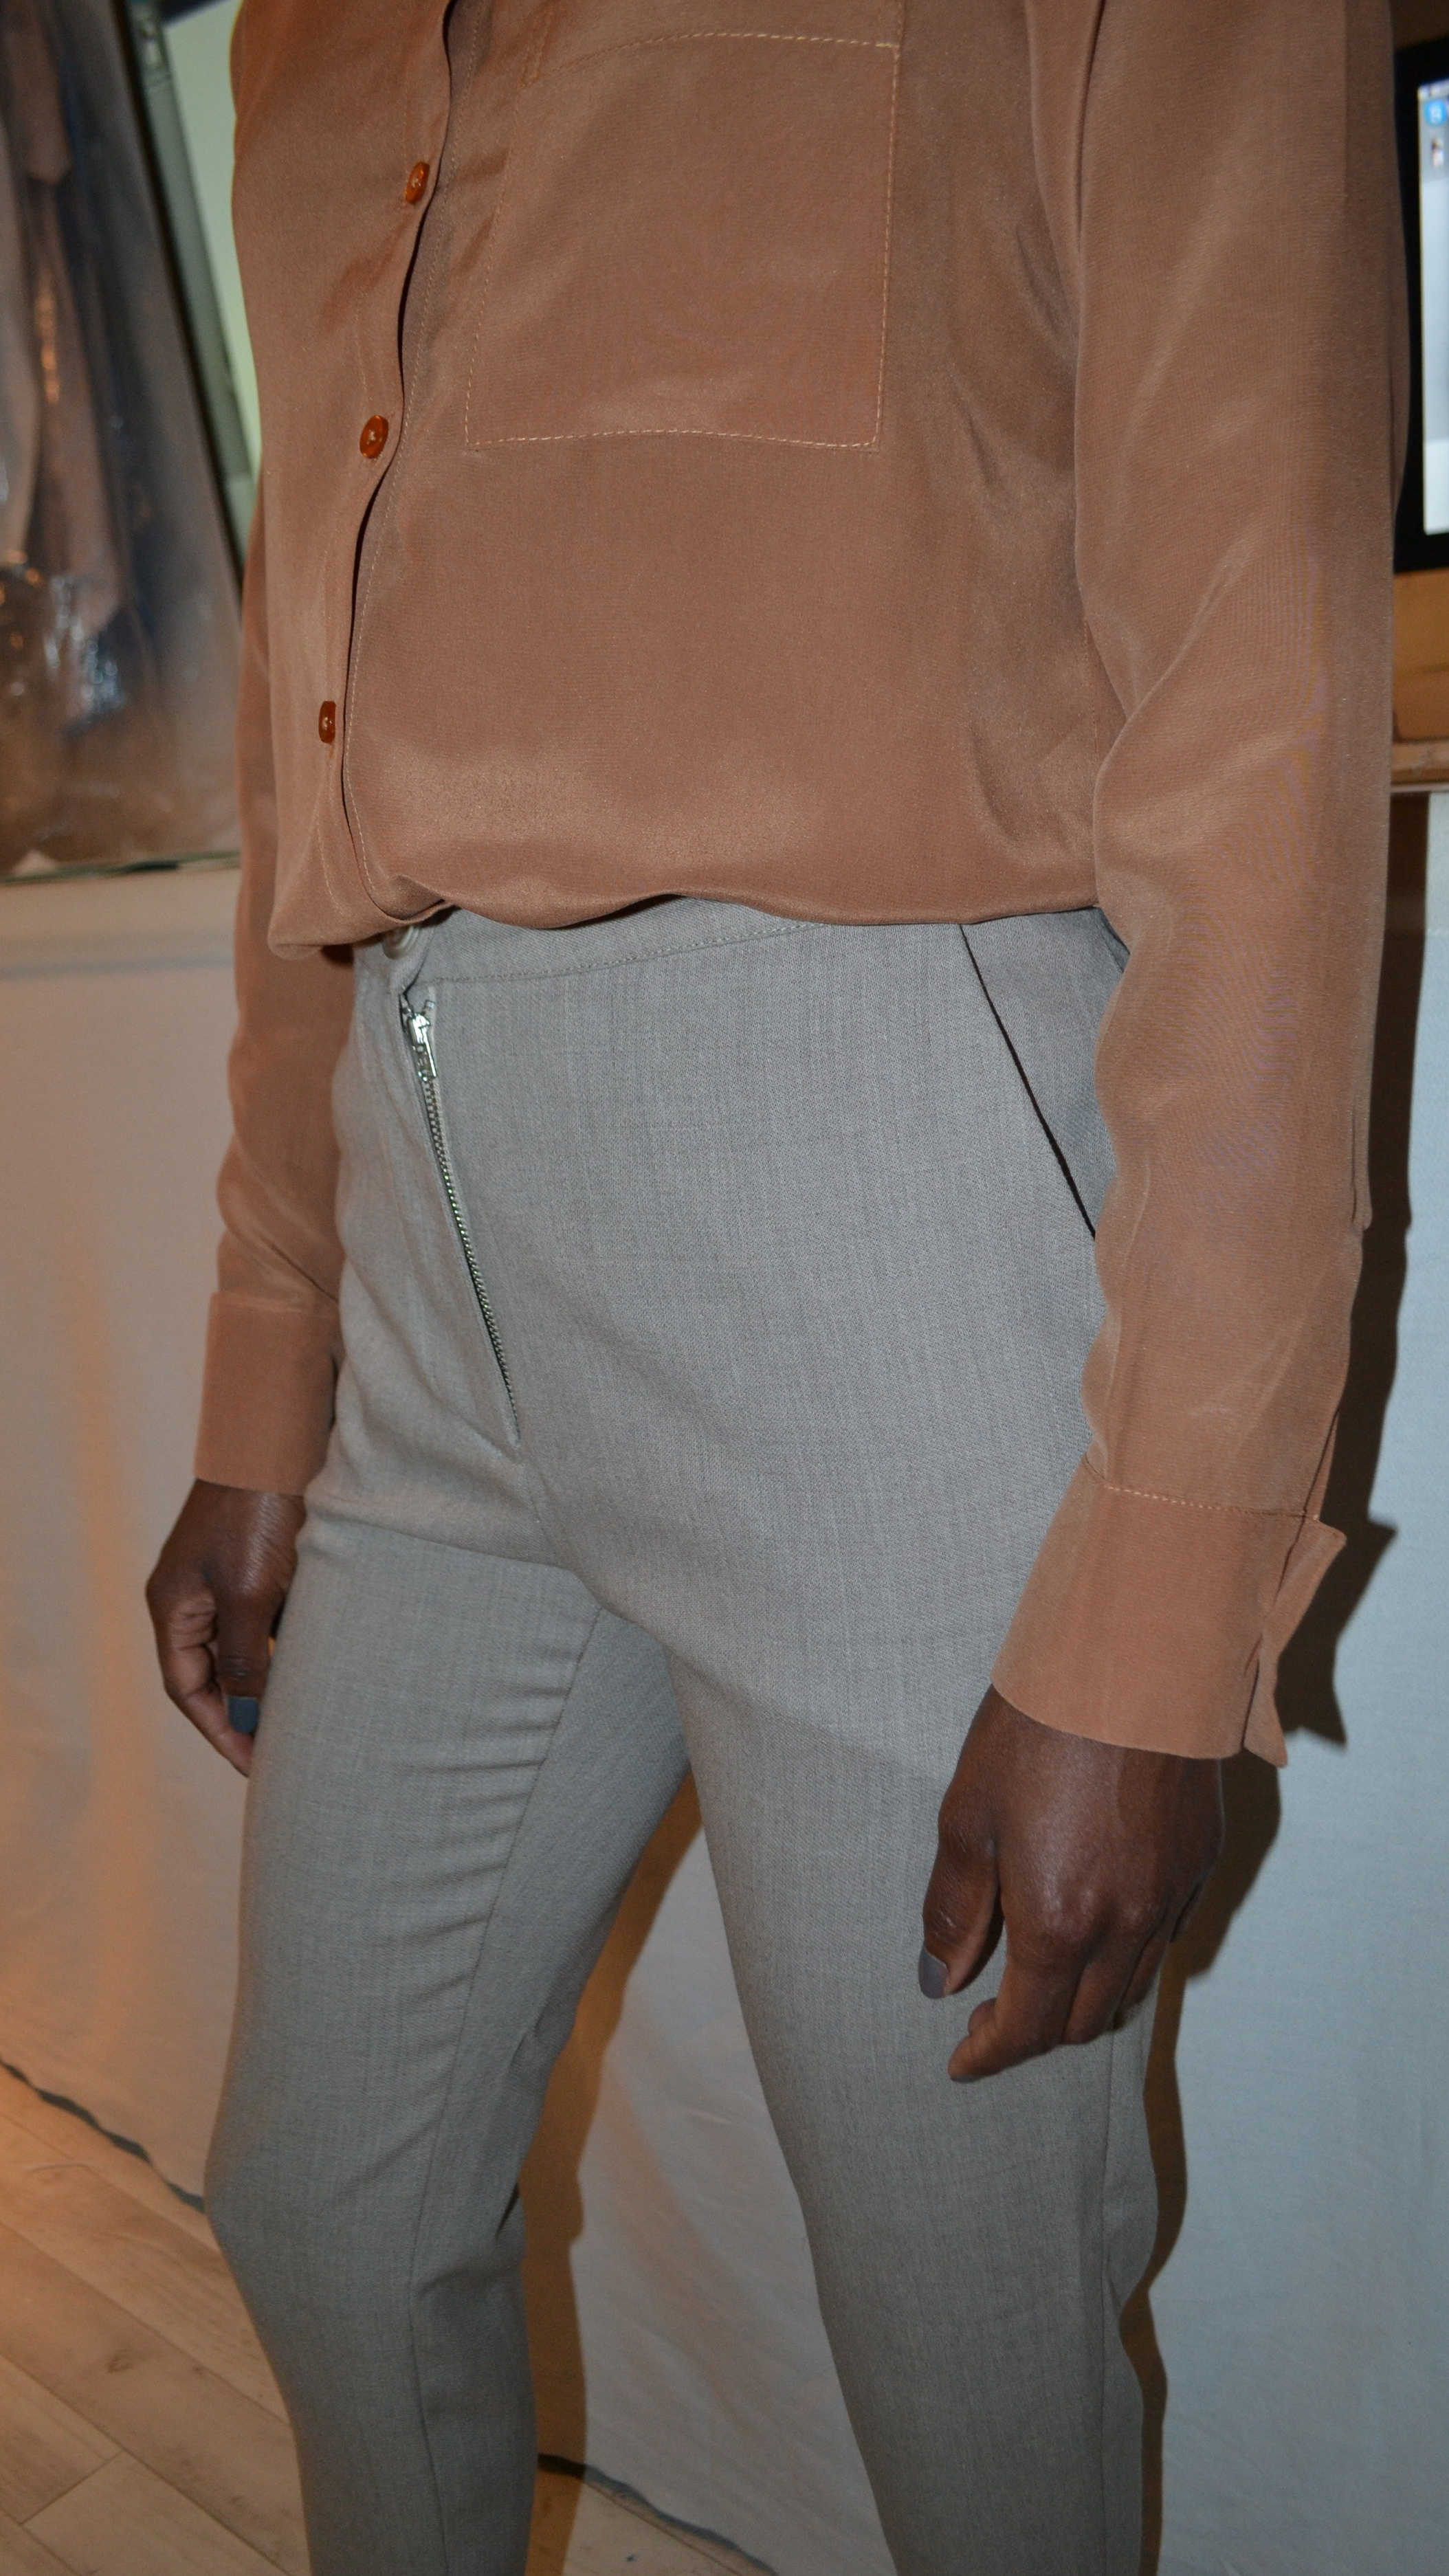 Naomi Moseley - Bespoke blouse and trousers